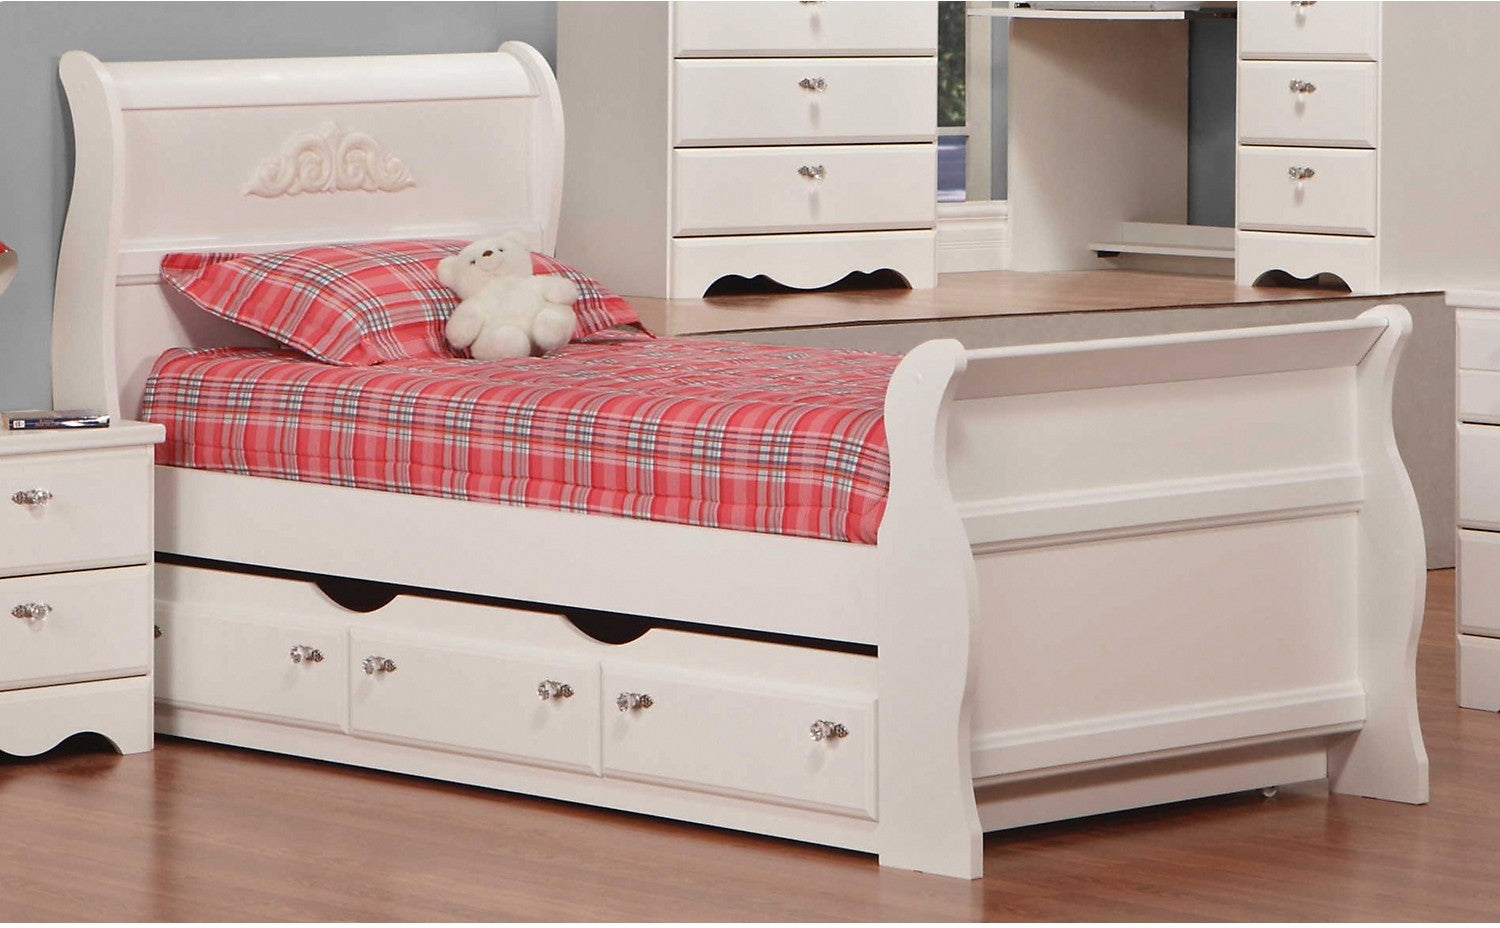 Diamond Dreams Twin Sleigh Bed Wtrundle The Brick